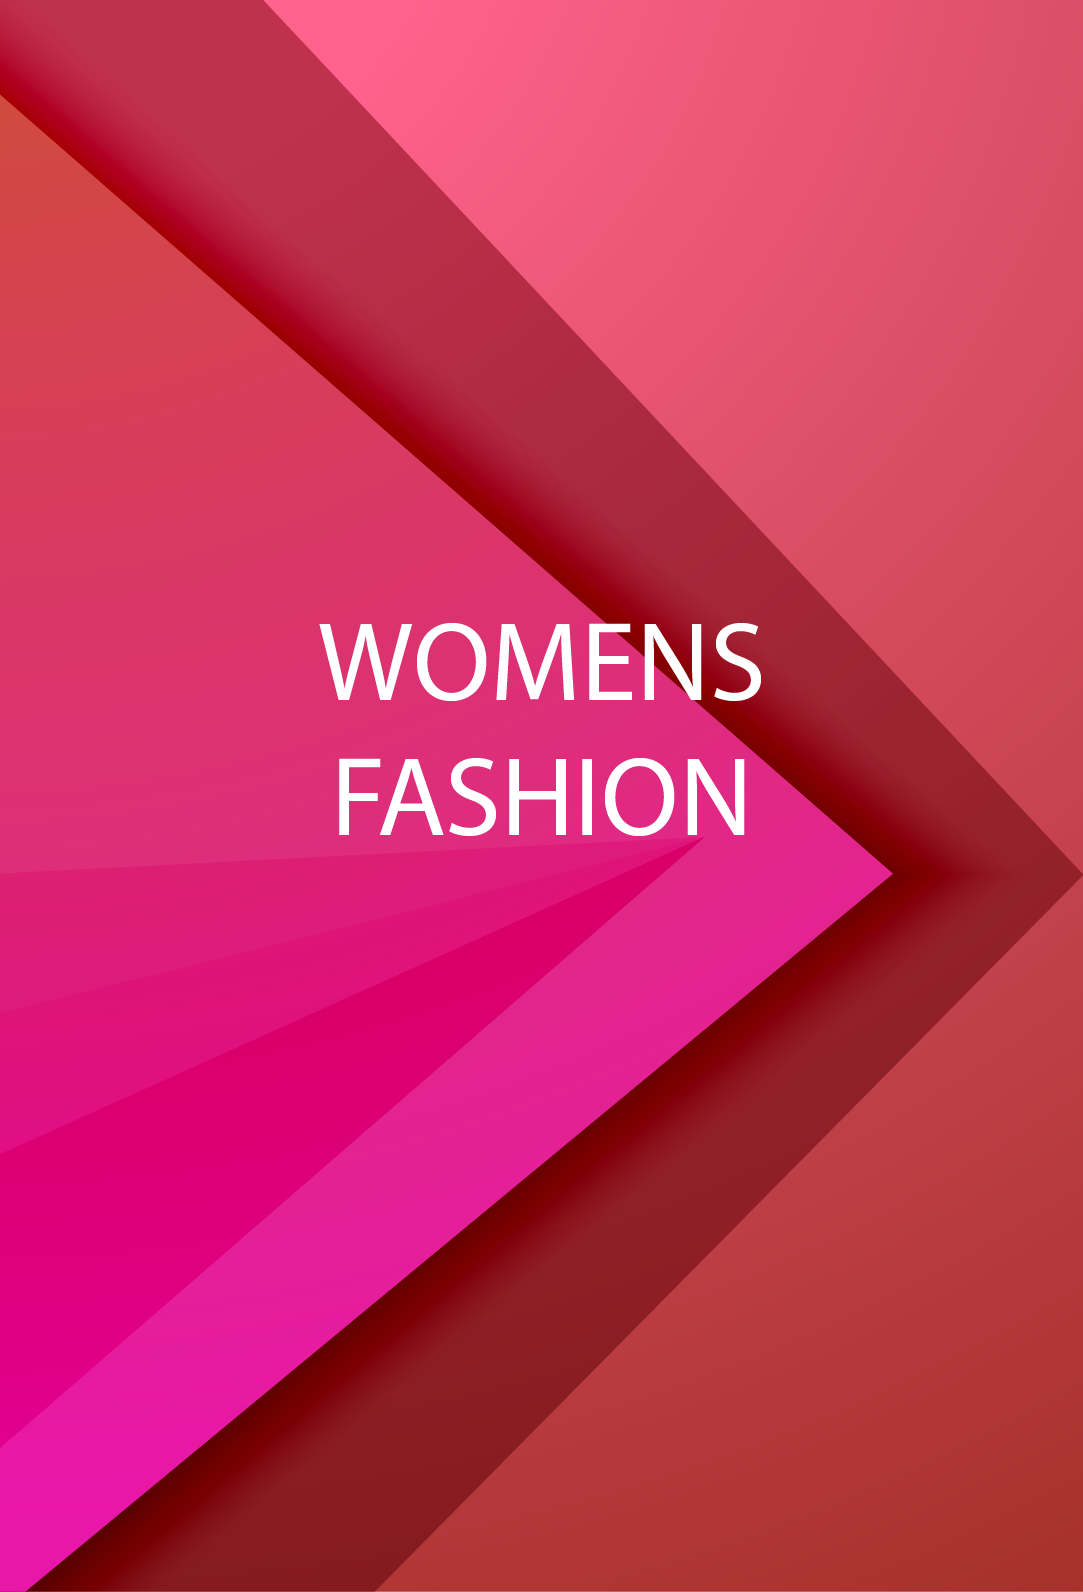 WomensFashion